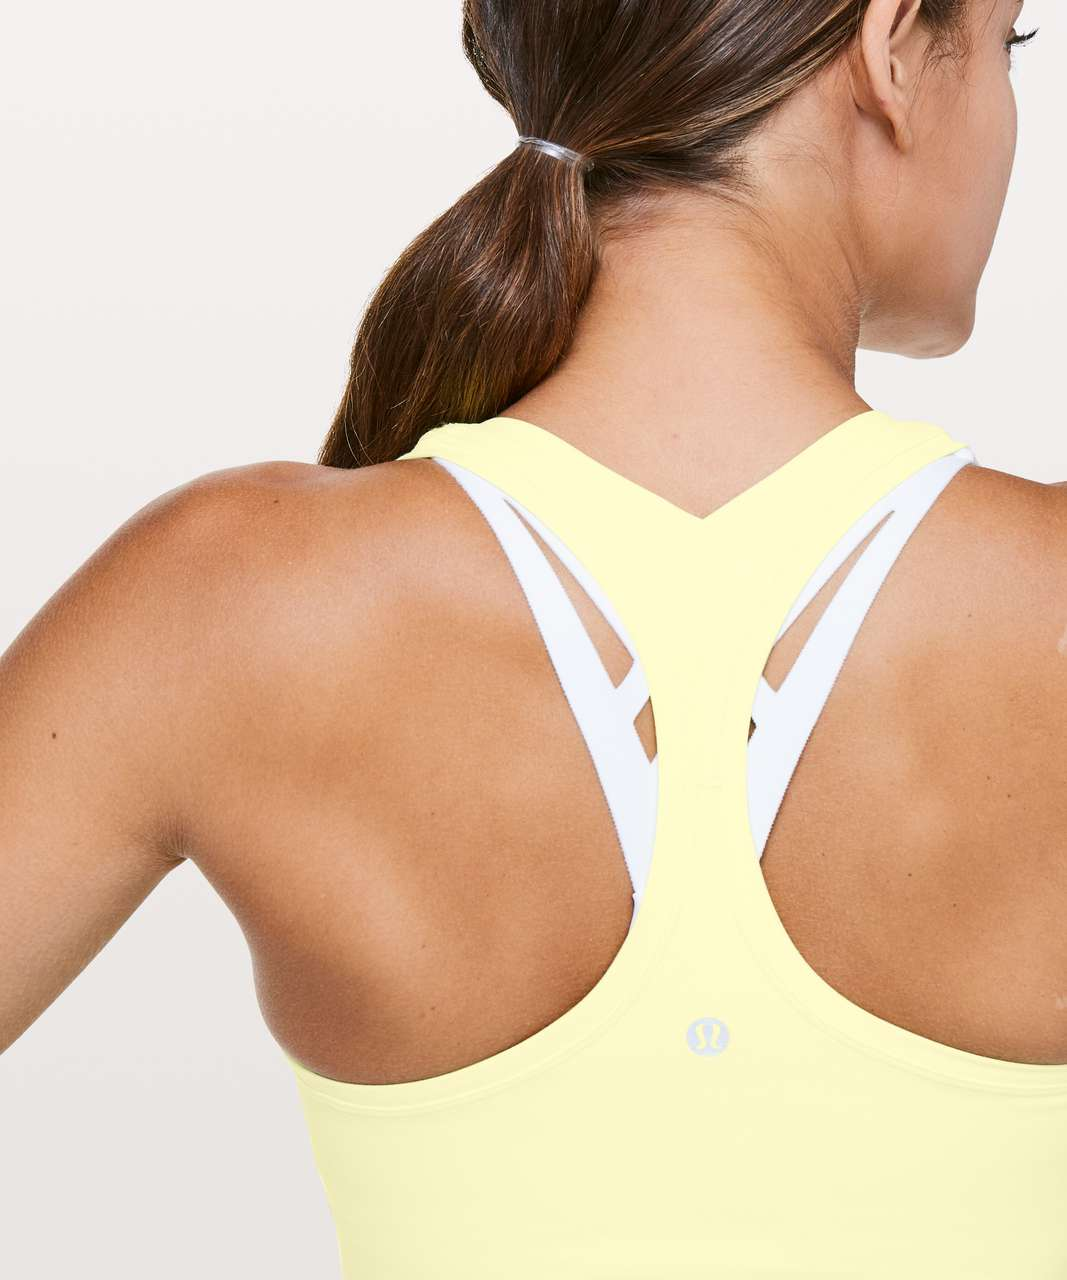 Lululemon Cool Racerback II *Nulu - Lemon Ice